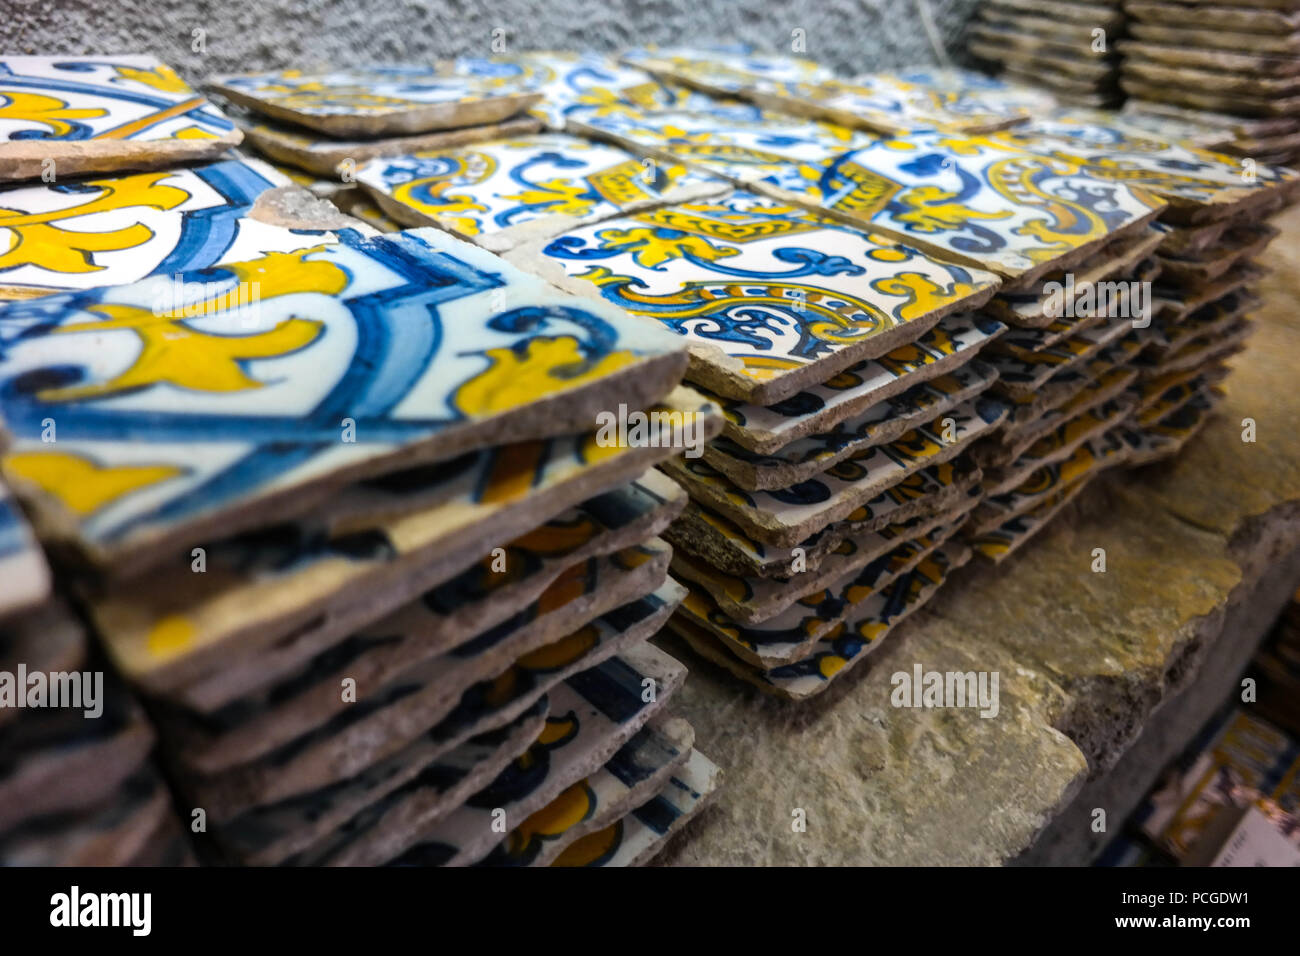 Lisbon. Antique tiles (azuleijos) in a shop in Principe Real Stock Photo